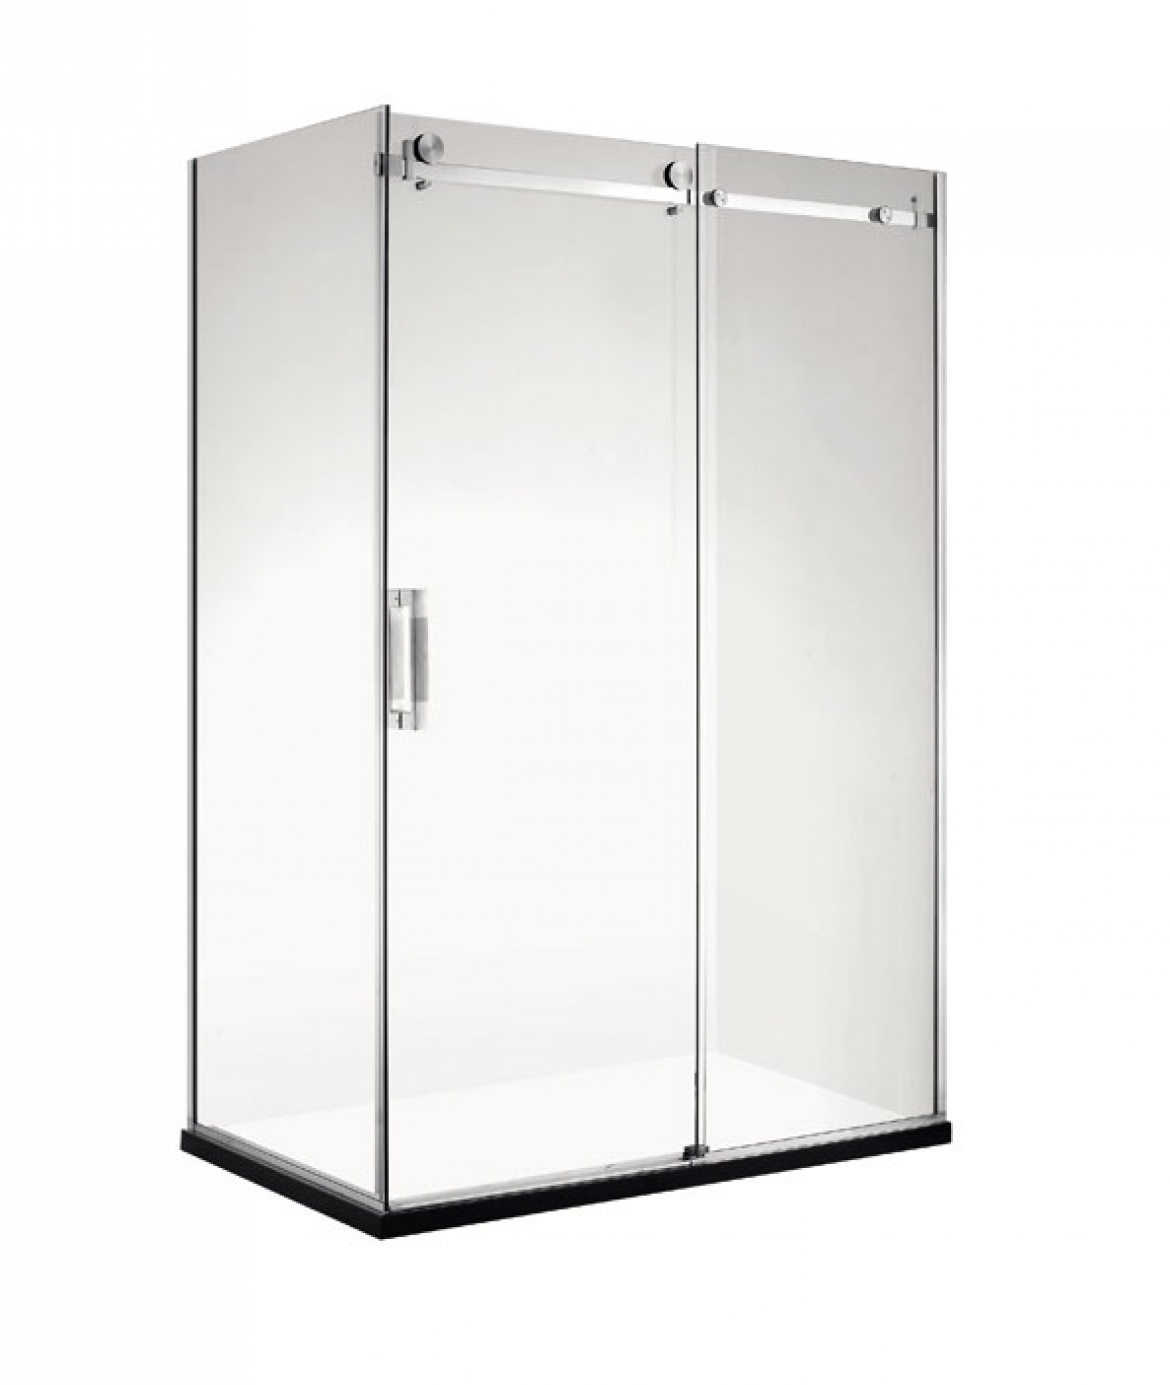 Frameless Corner sliding door Shower screen [1500 x 900 mm]